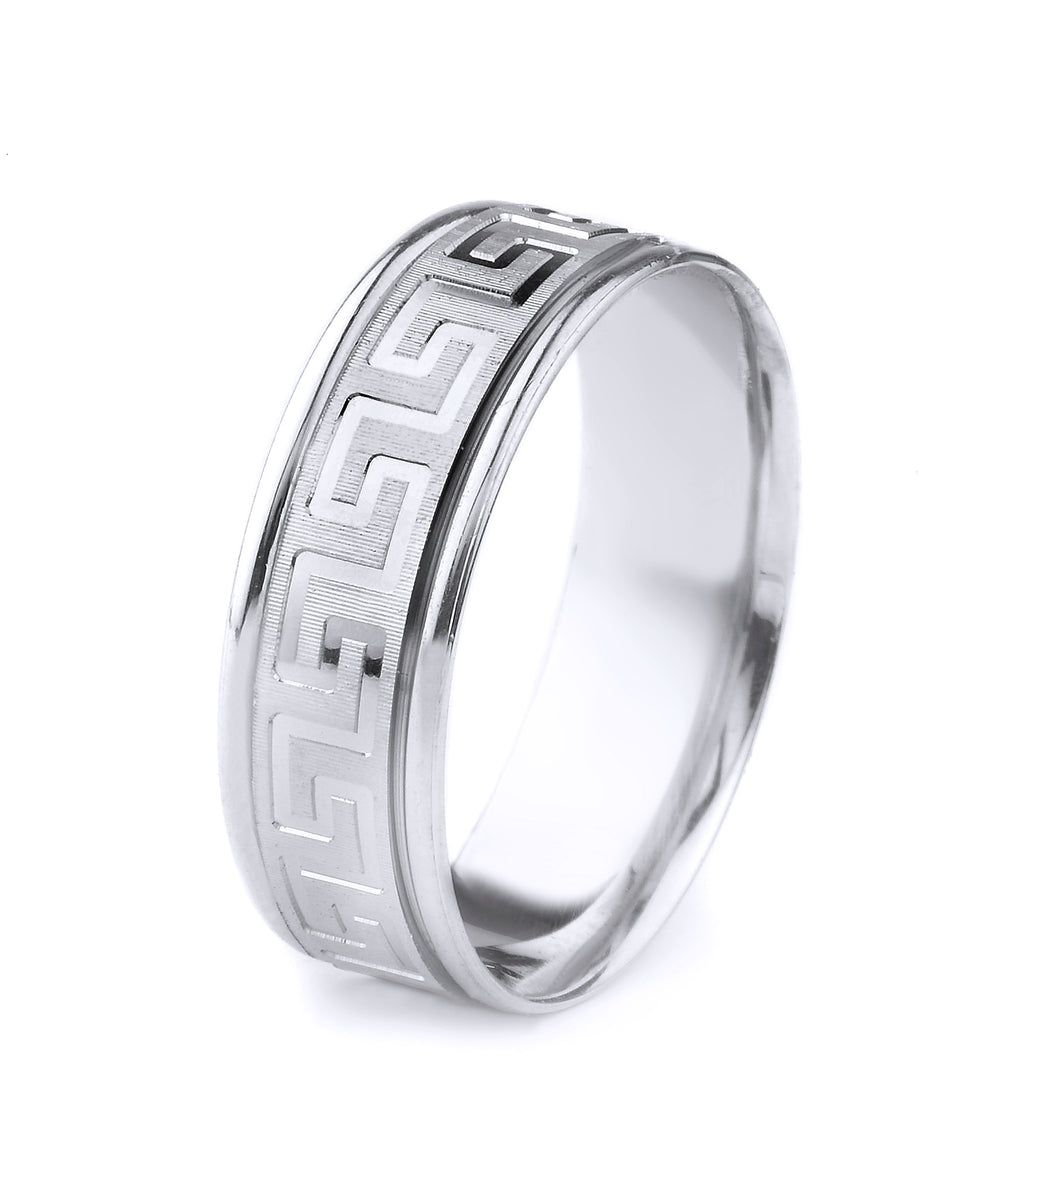 PLATINUM MEN'S WEDDING BAND WITH GREEK KEY DESIGN WITH WORN COIN EDGE FINISH AND POLISHED EDGES